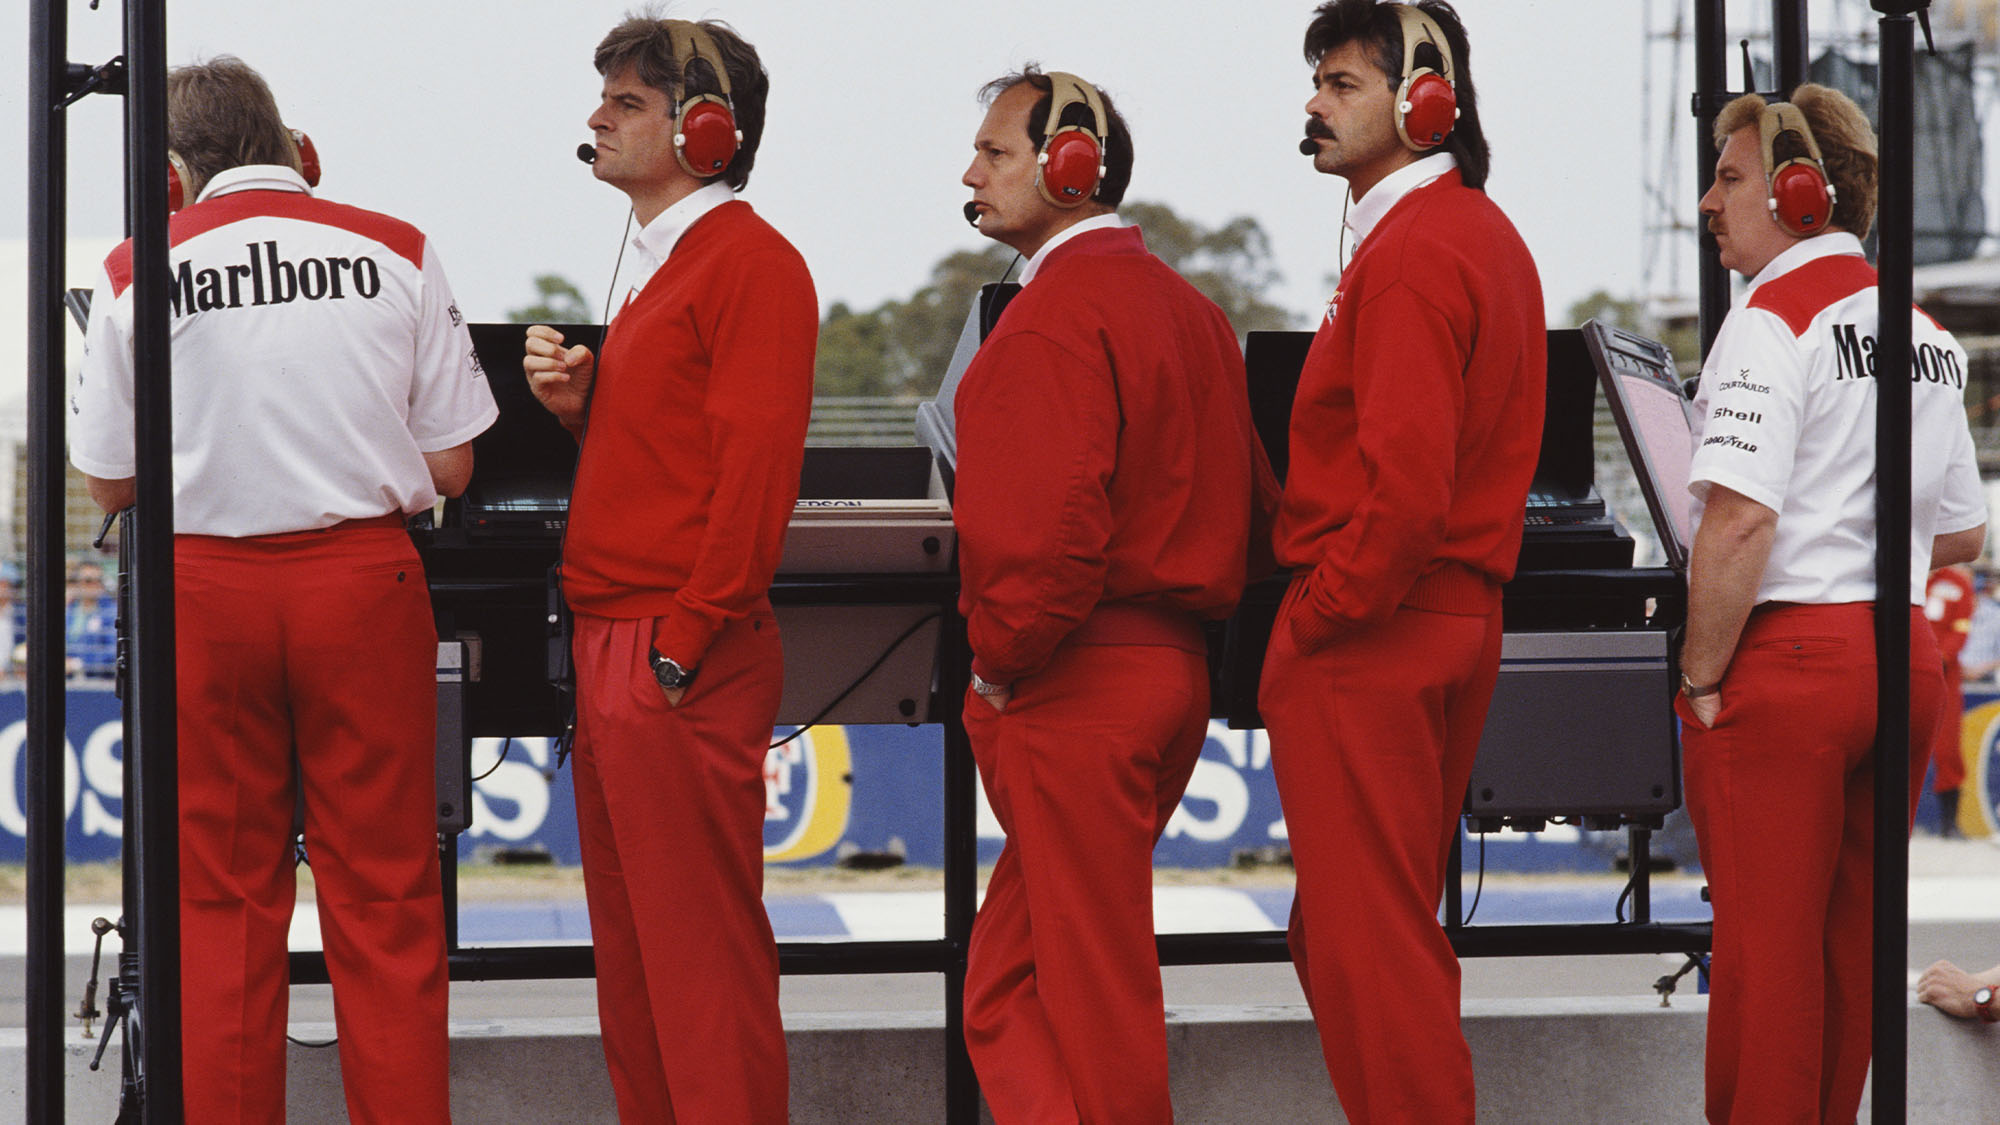 Team principle for Honda Marlboro McLaren Ron Dennis stands in between team designers Steve Nichols (L) and Gordon Murray (R)and Neil Oatley (far right) during the Foster's Australian Grand Prix on 5th November 1989 on the streets of Adelaide in Adelaide, Australia. (Photo by Pascal Rondeau/Getty Images)